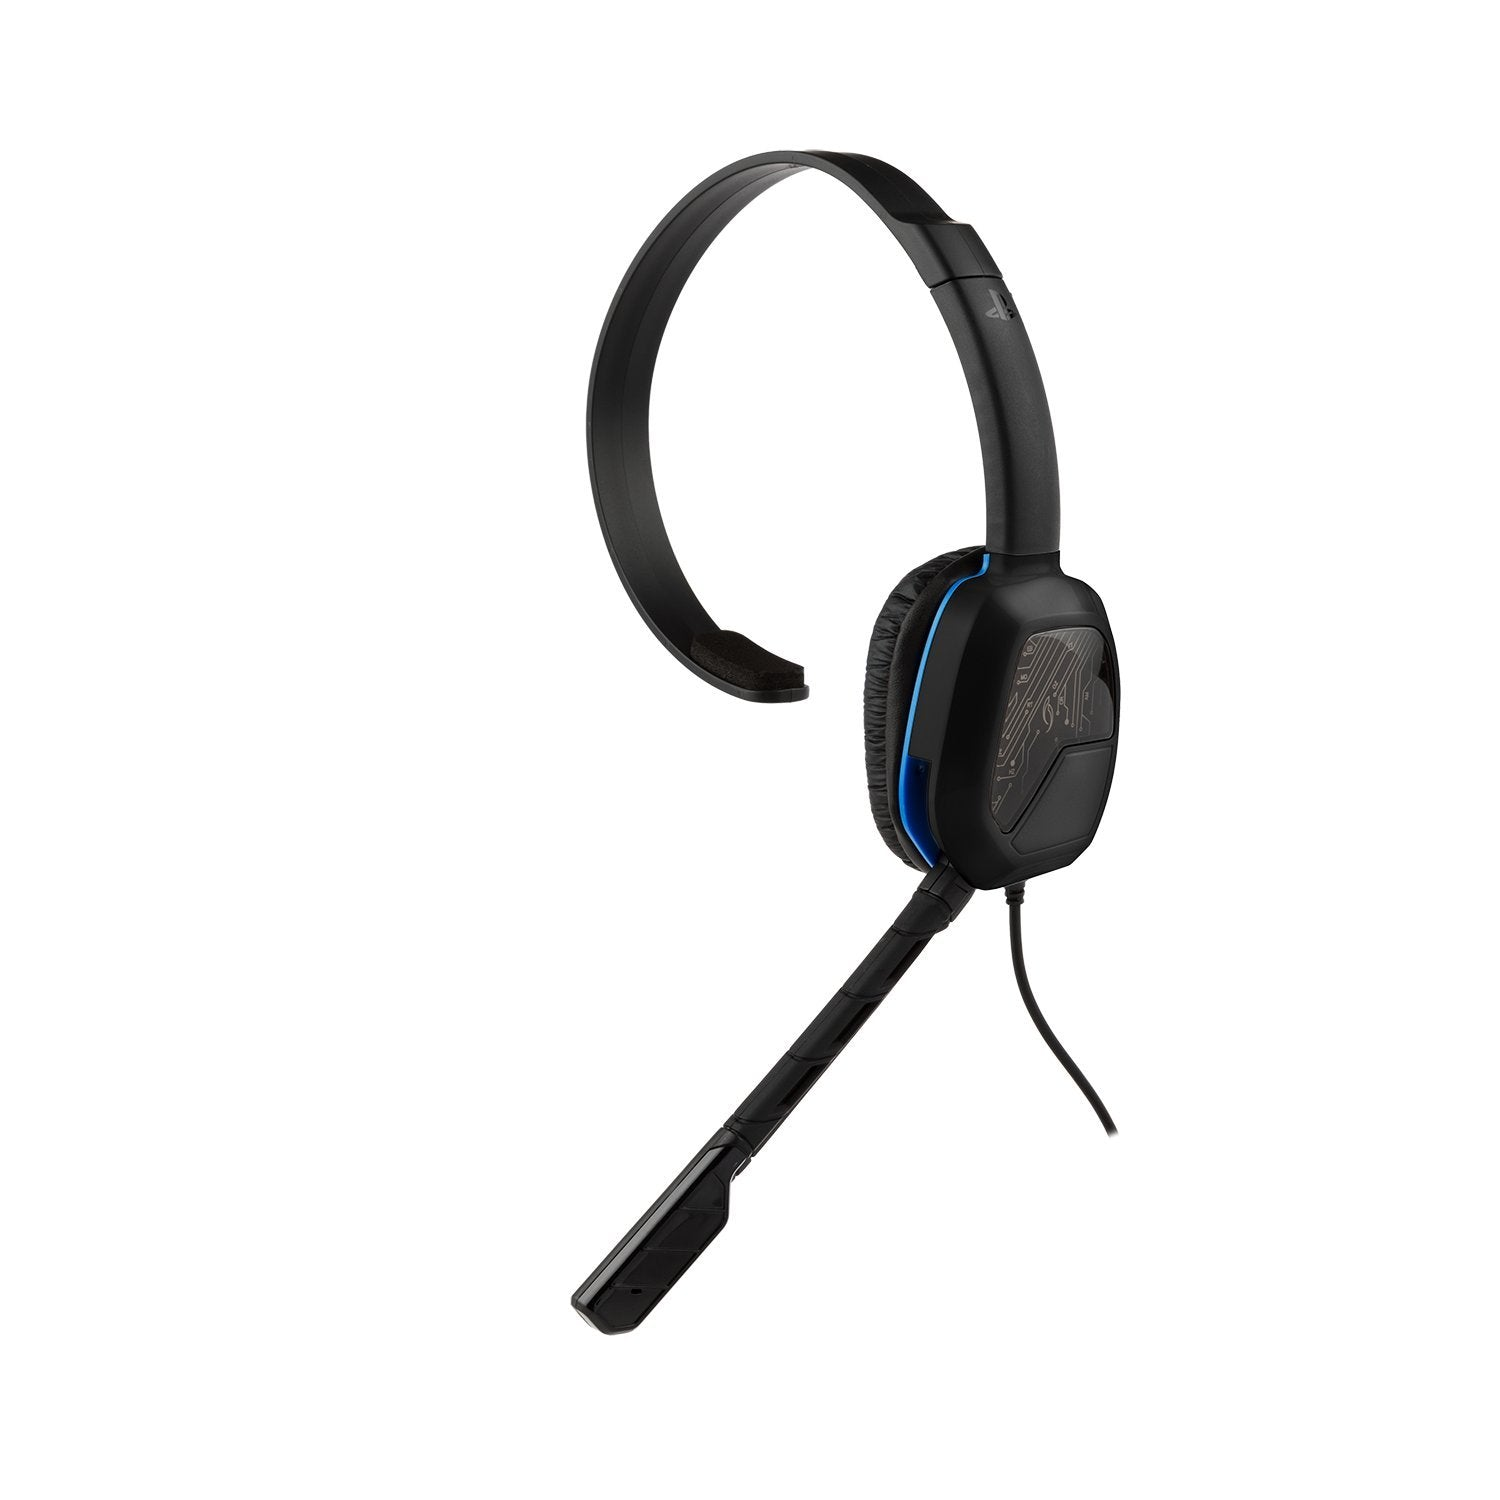 PDP Sony Afterglow LVL 1 Chat Headset 051-031, Black